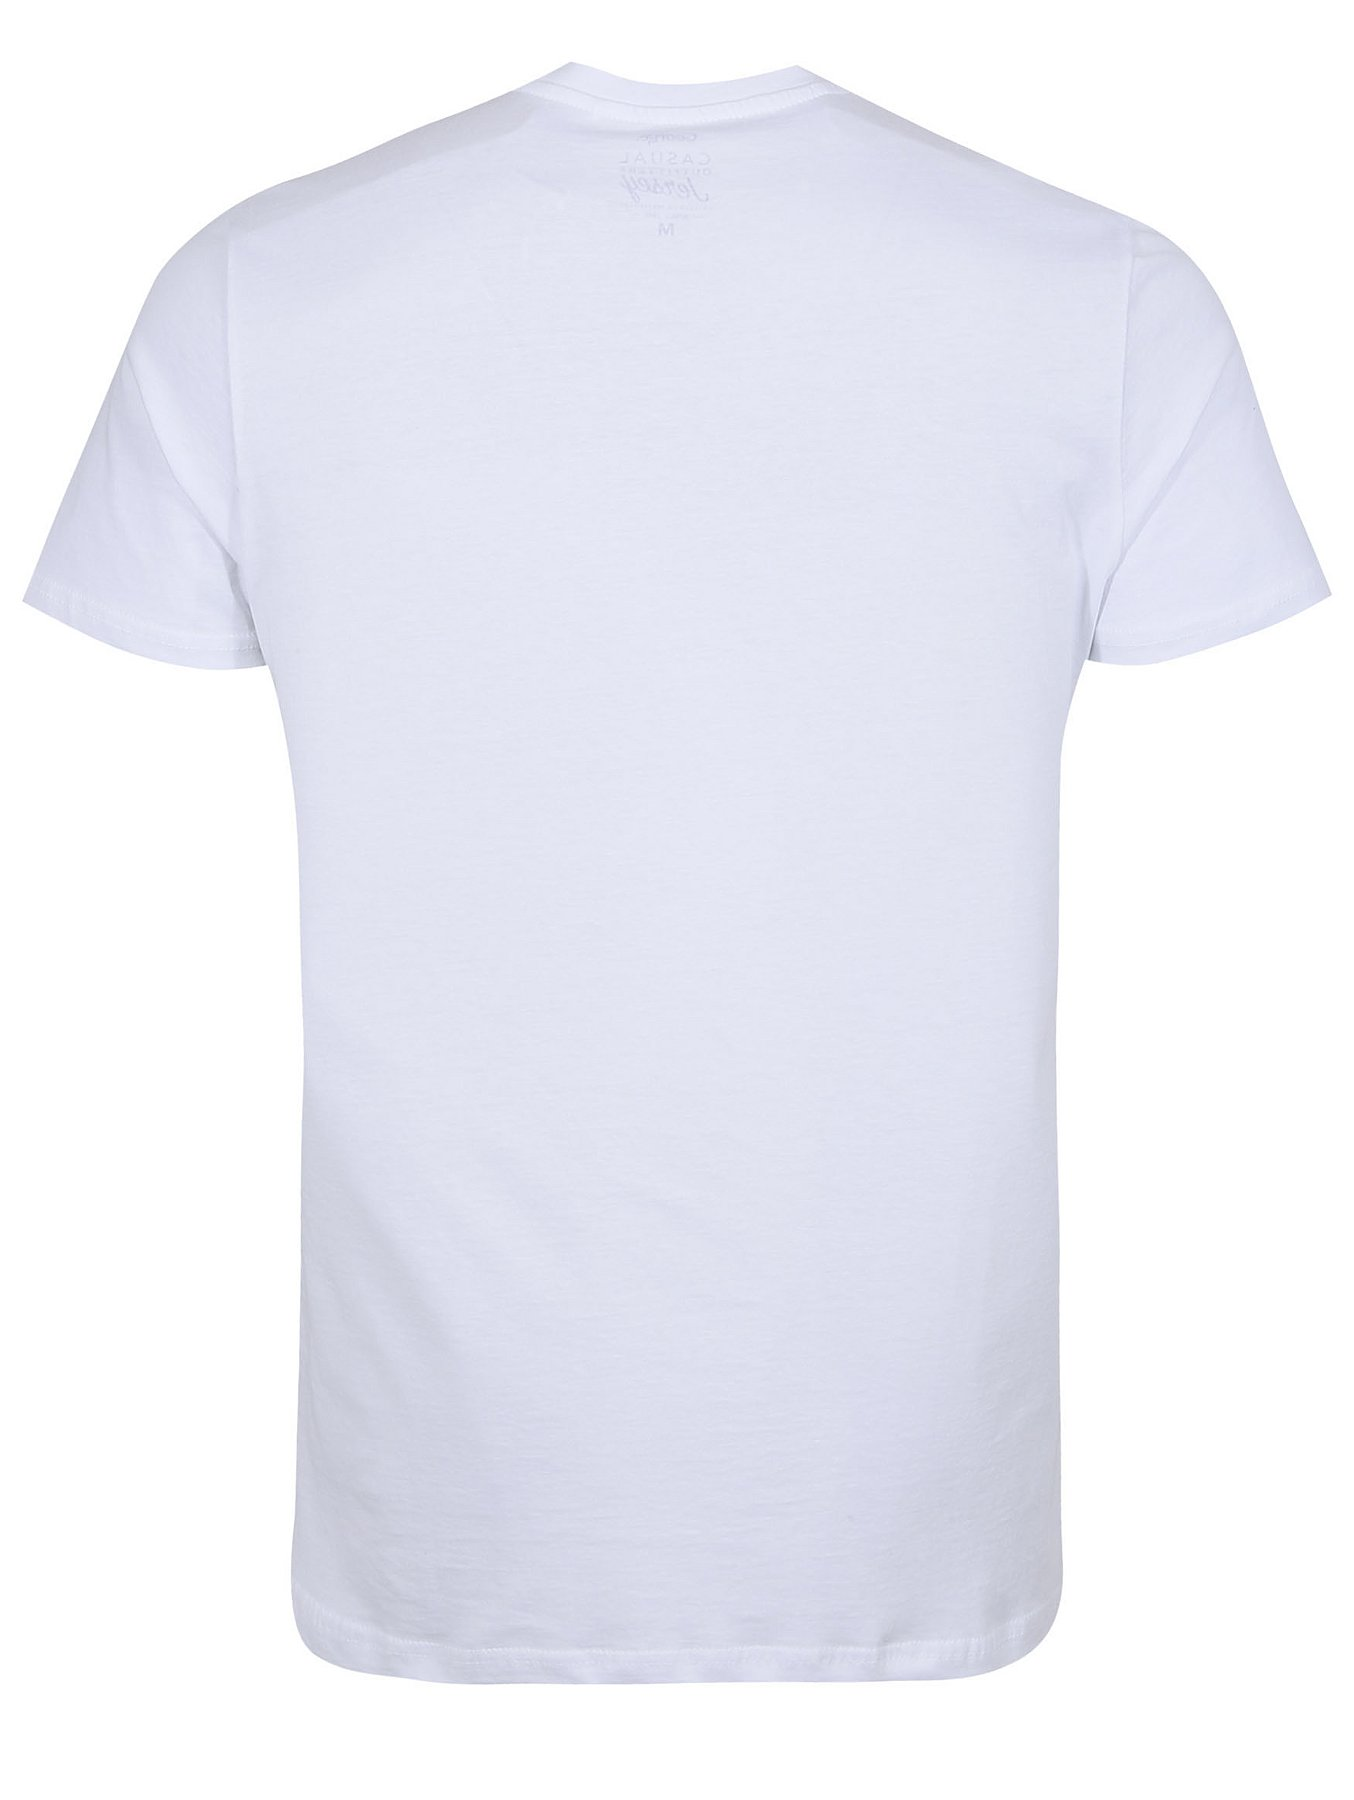 sells good out x low price sale White Crew Neck T-shirt